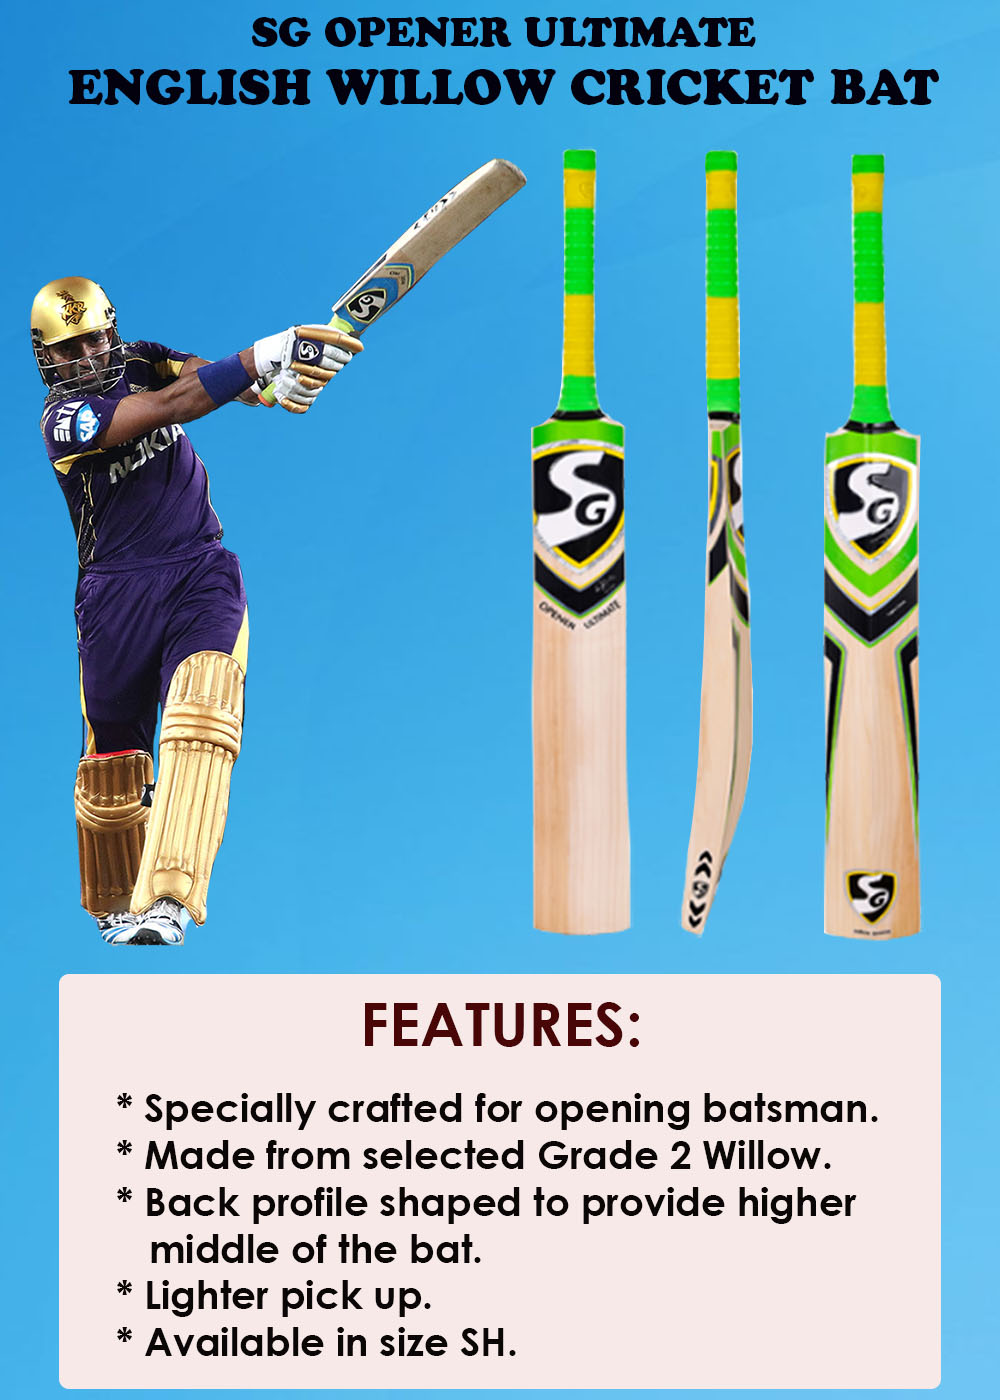 SG Opener Ultimate English Willow Cricket Bat_3